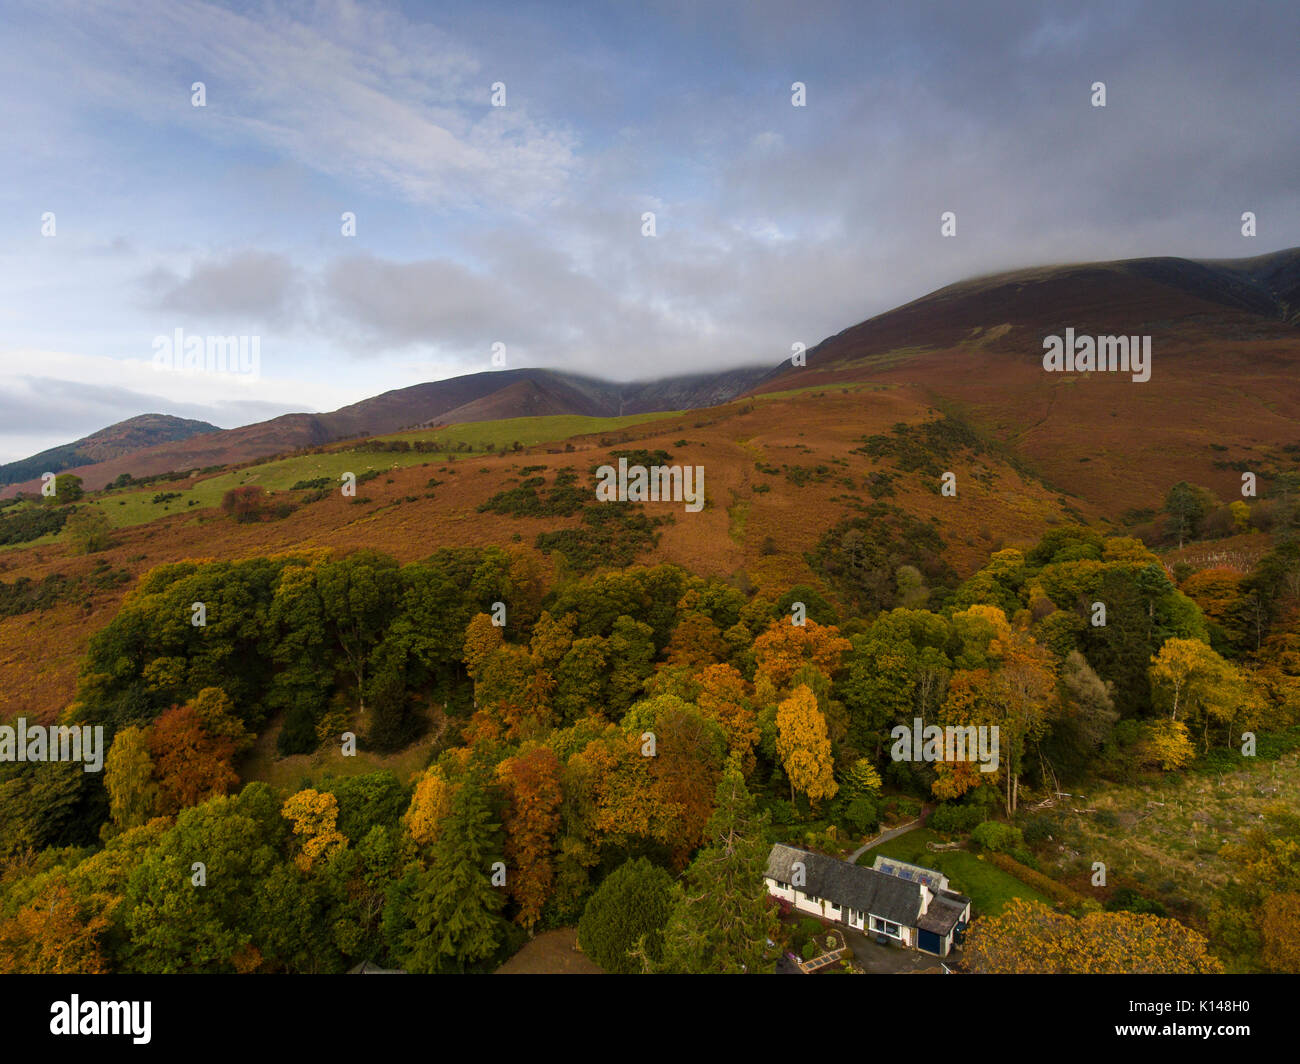 Skiddaw by drone - Stock Image